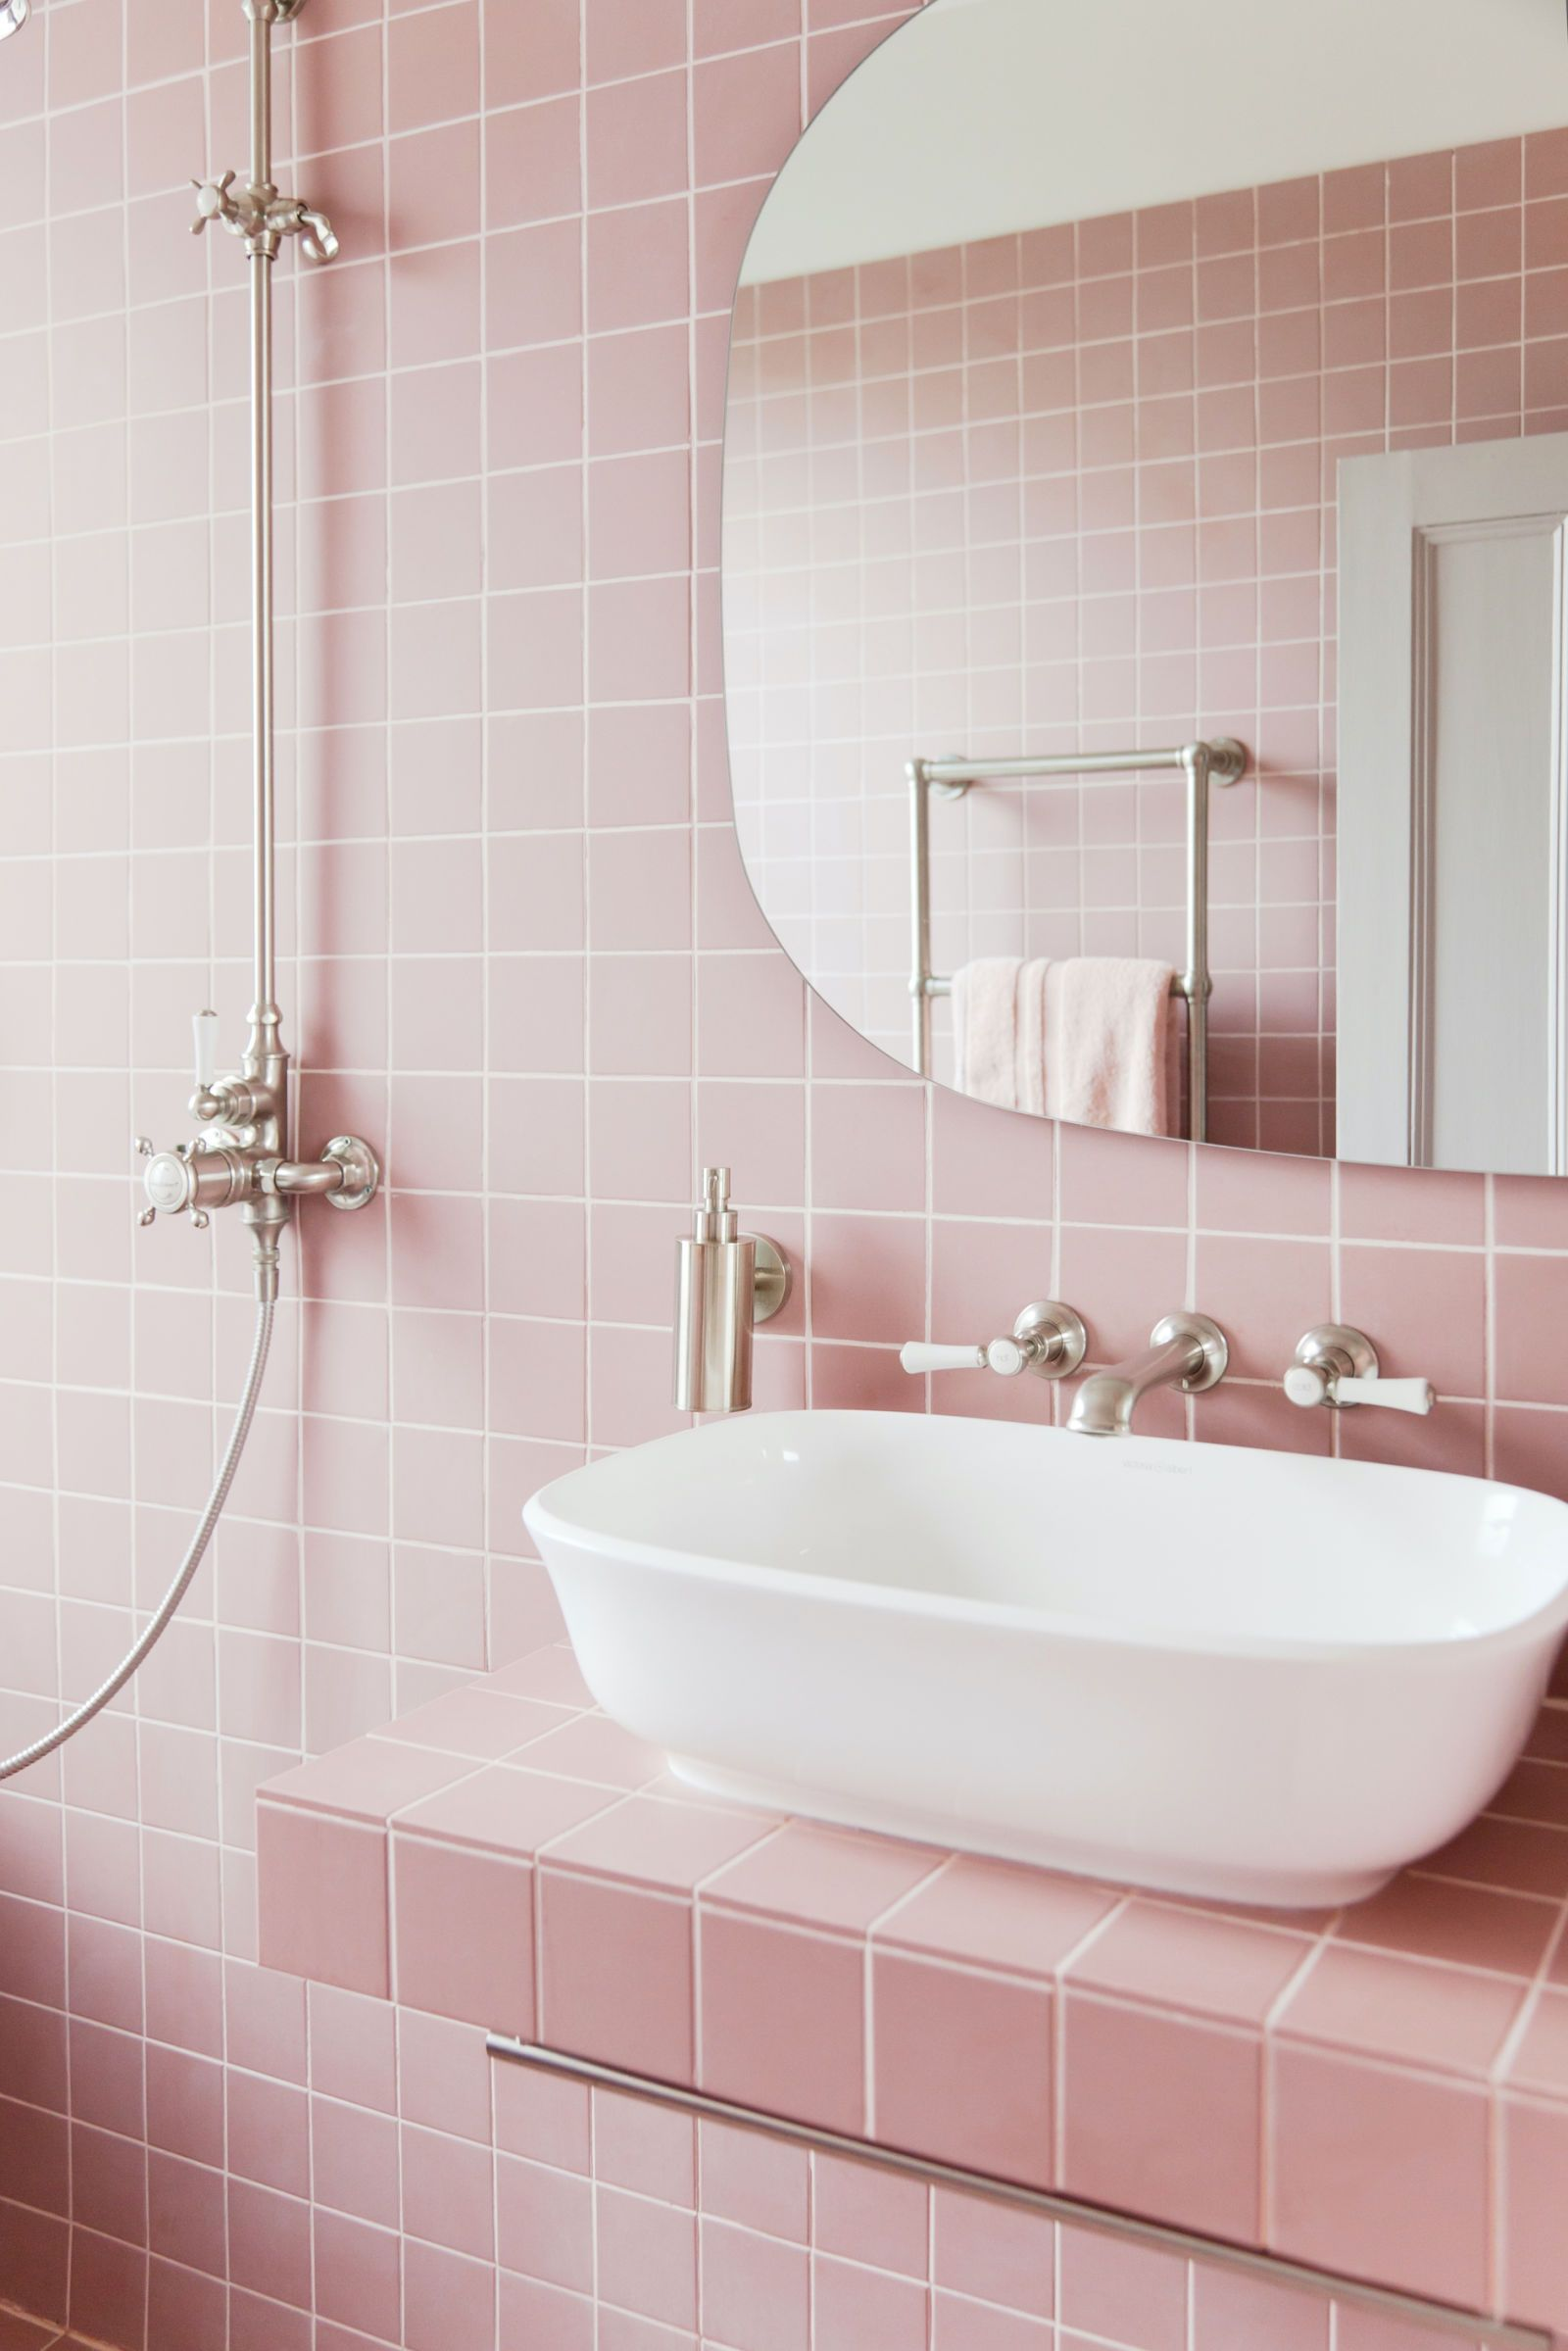 These Pictures Will Make You Want To Have An All Pink Bathroom